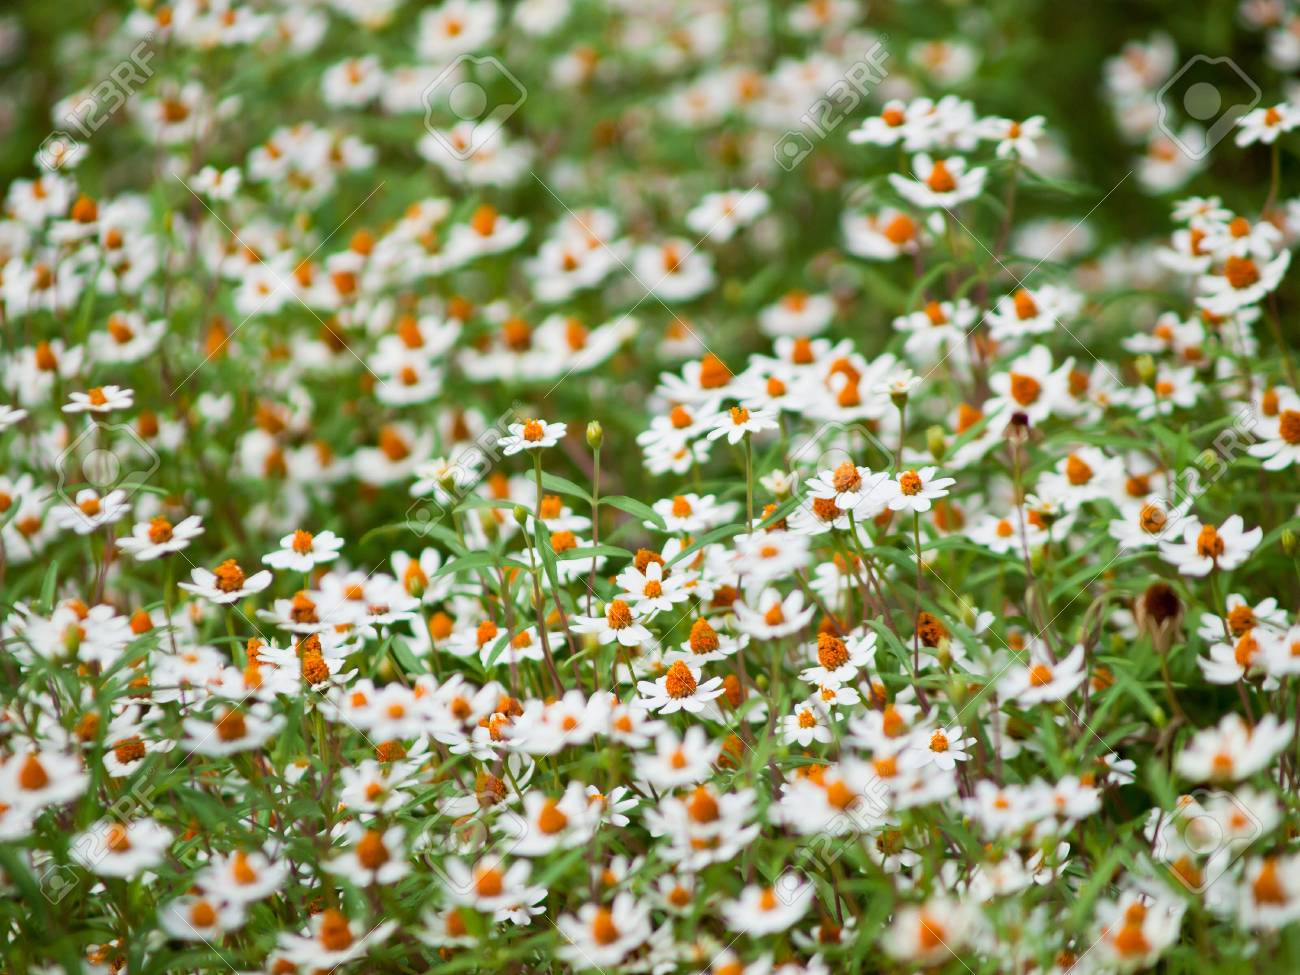 Field of daisy flowers stock photo picture and royalty free image field of daisy flowers stock photo 15361175 izmirmasajfo